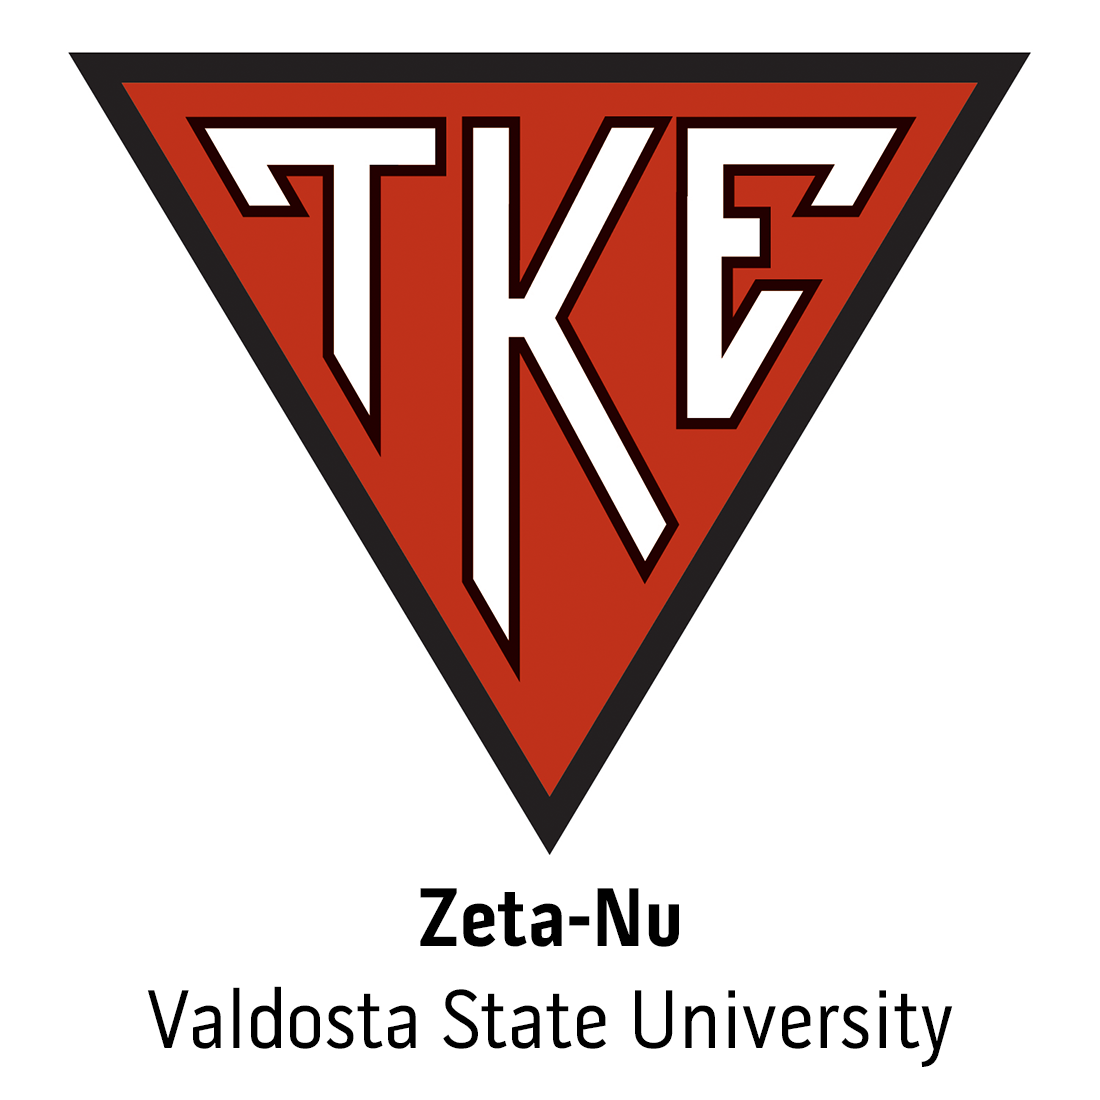 Zeta-Nu Chapter at Valdosta State University